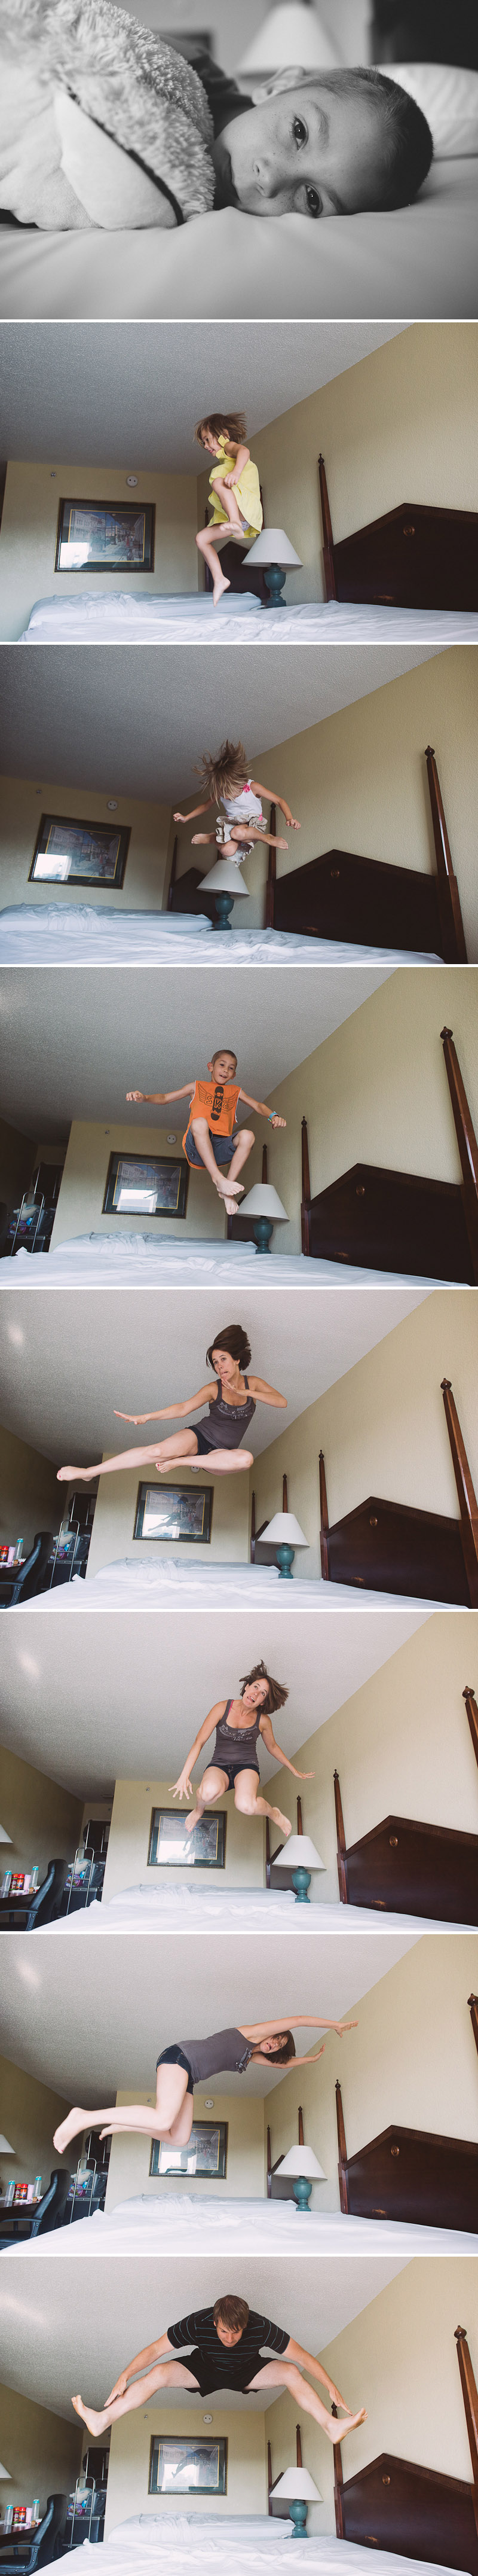 Family hotel bed jumping contest.